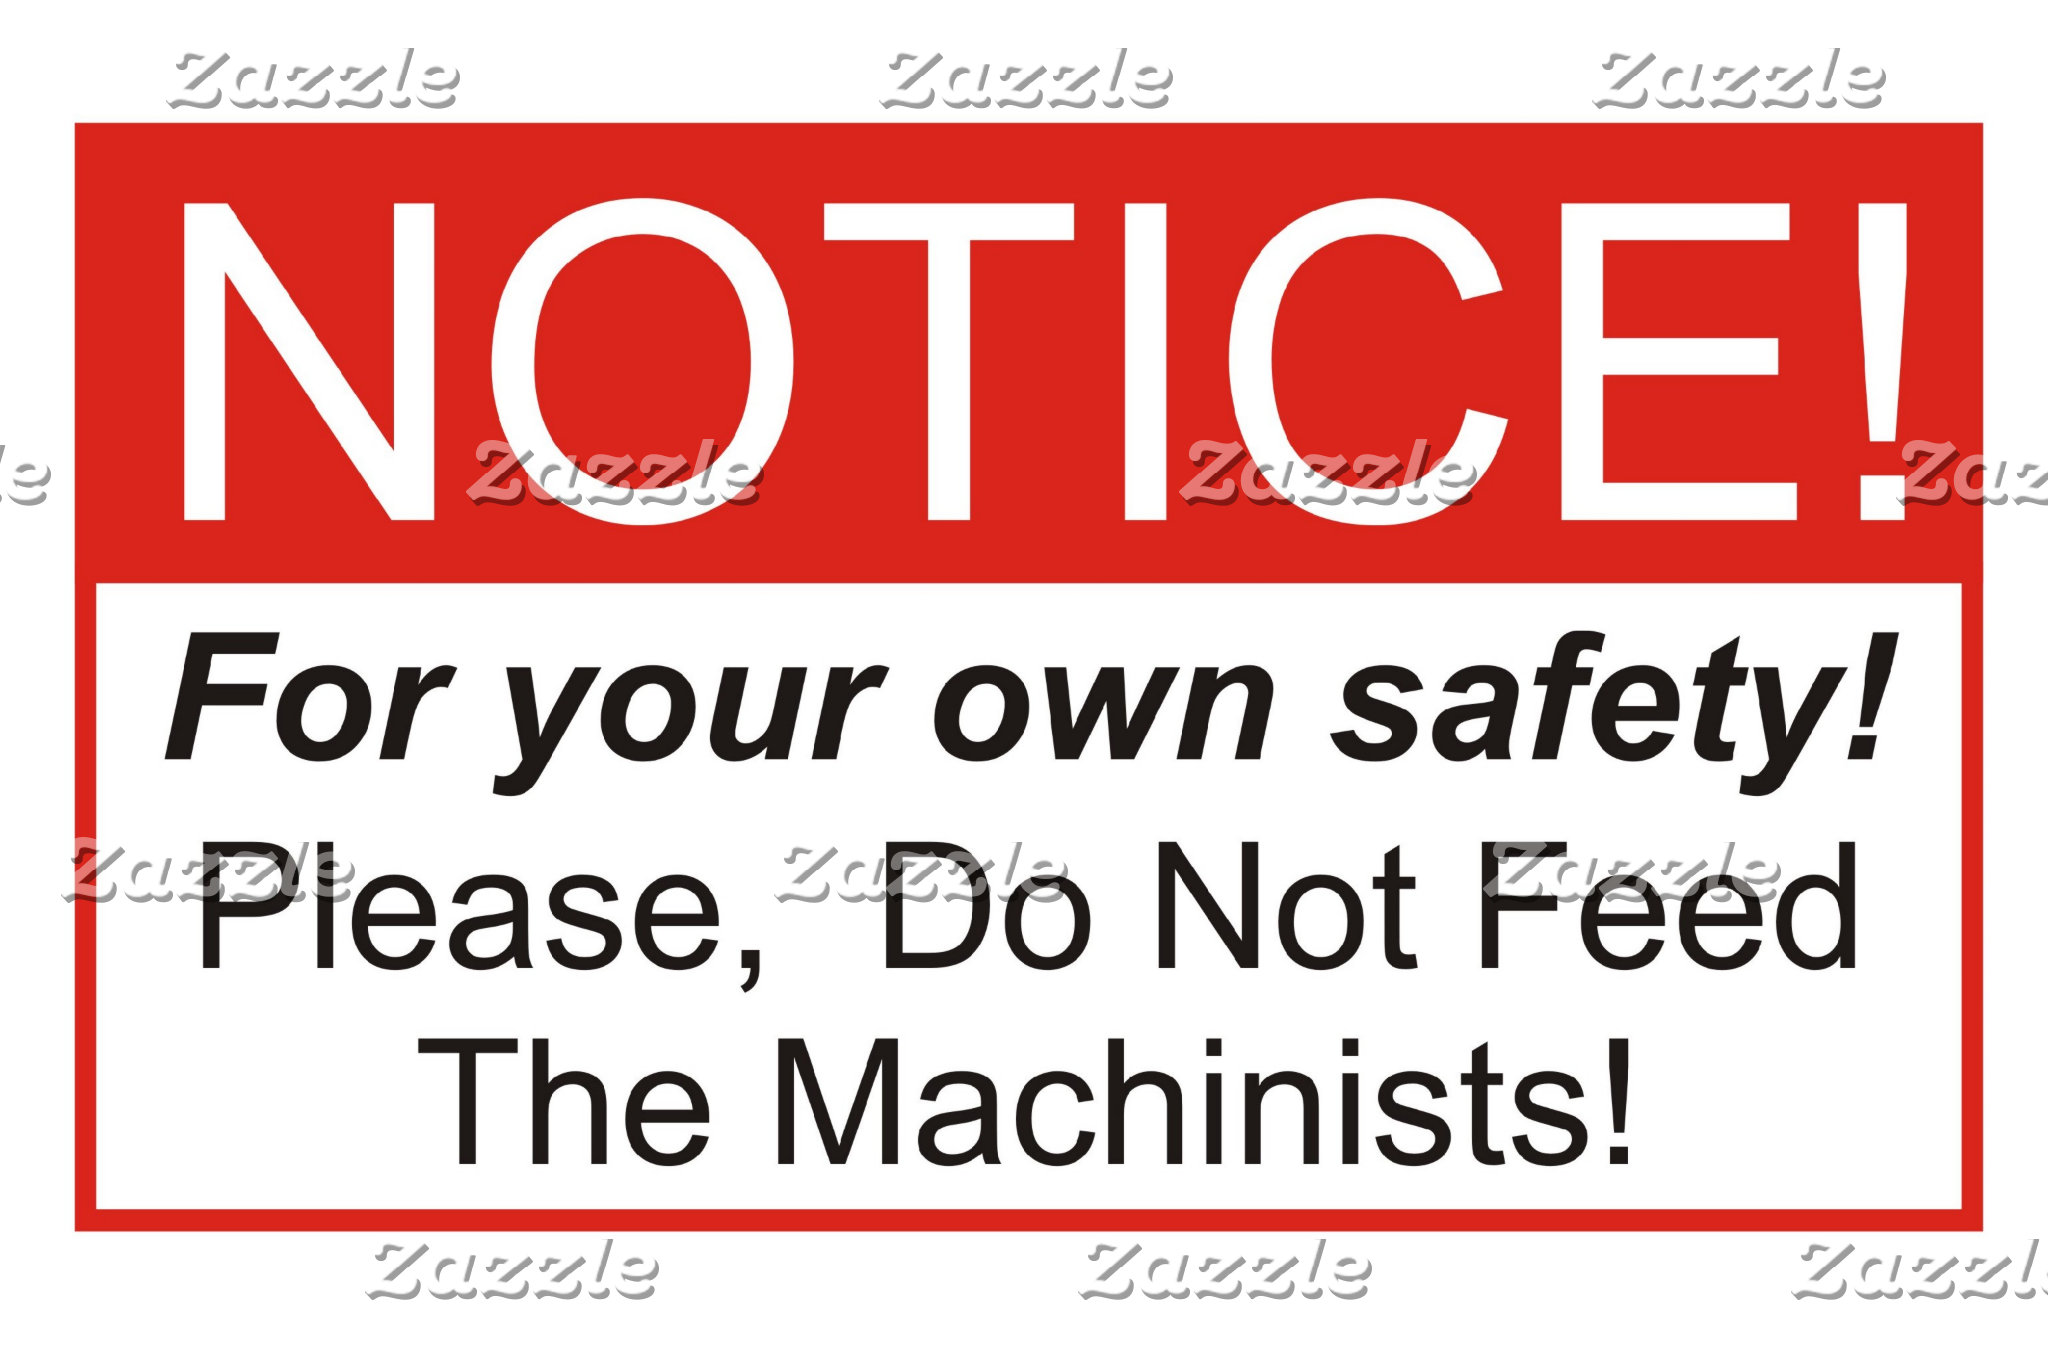 Do Not Feed The Machinists!